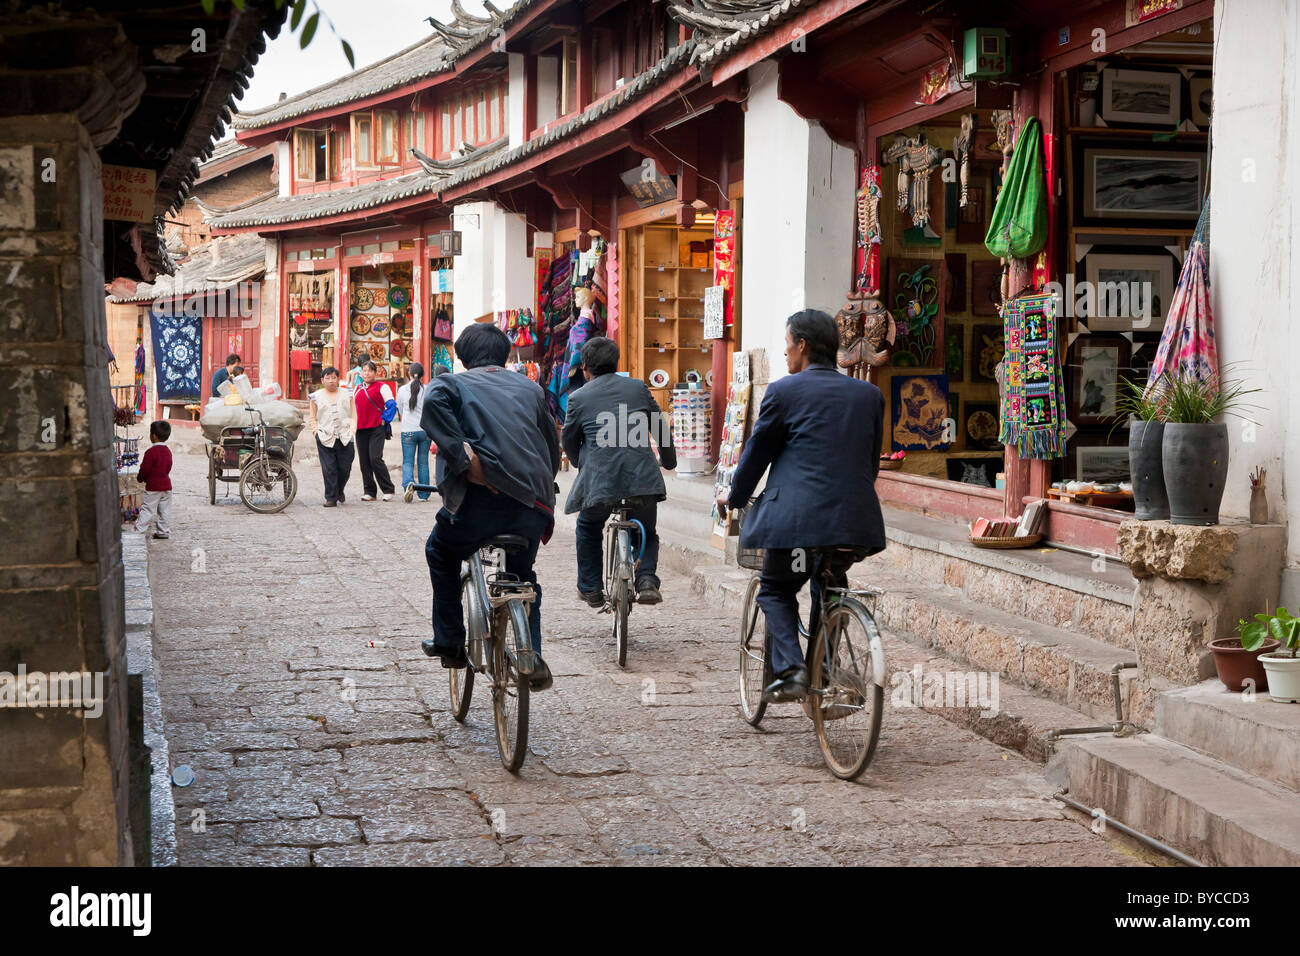 Three men cycling through a narrow paved lane in Lijiang old town, Yunnan Province, China. JMH4755 - Stock Image